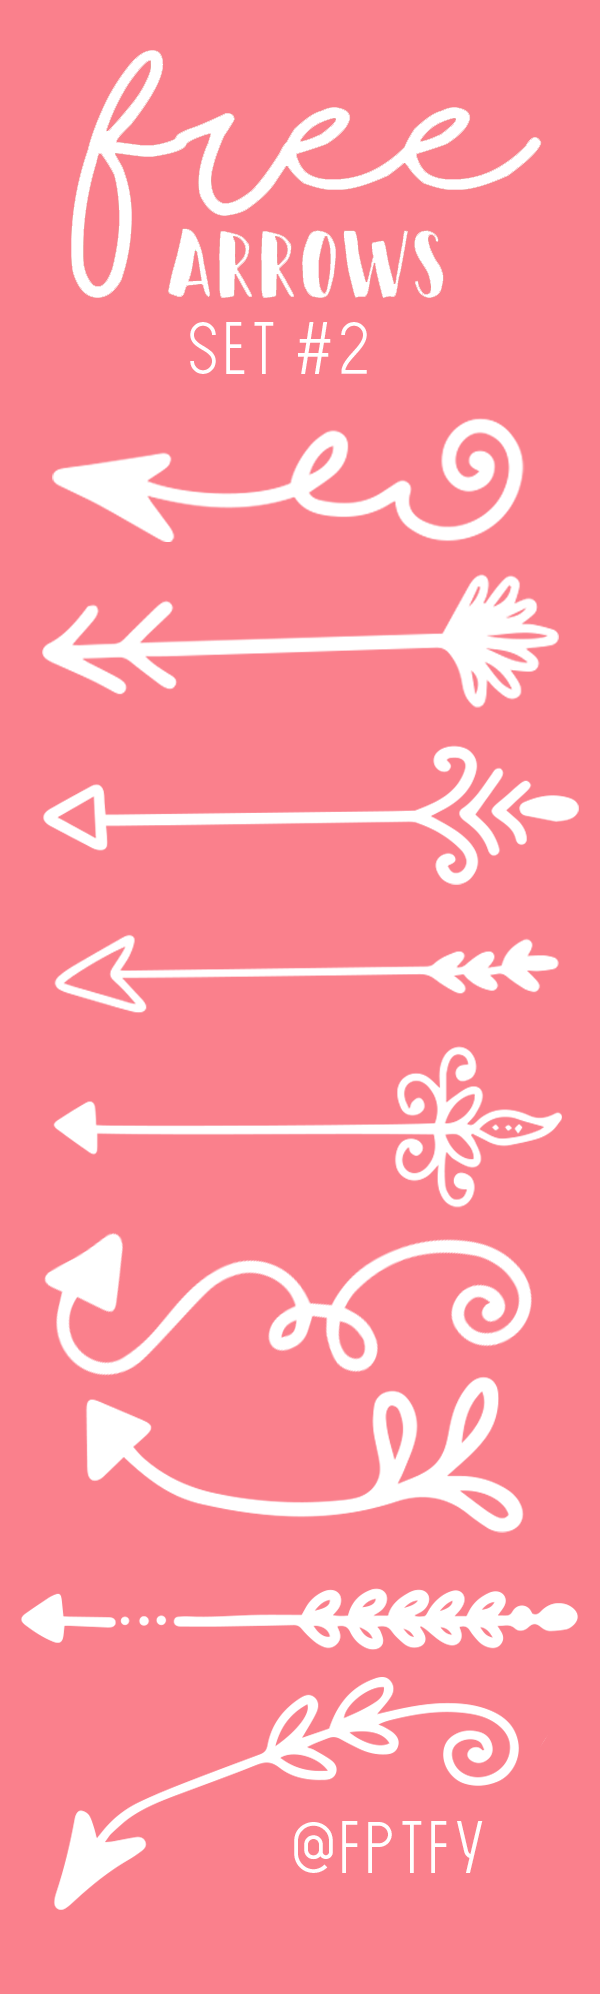 Free hand drawn arrows set free hand drawing hand drawn and arrow